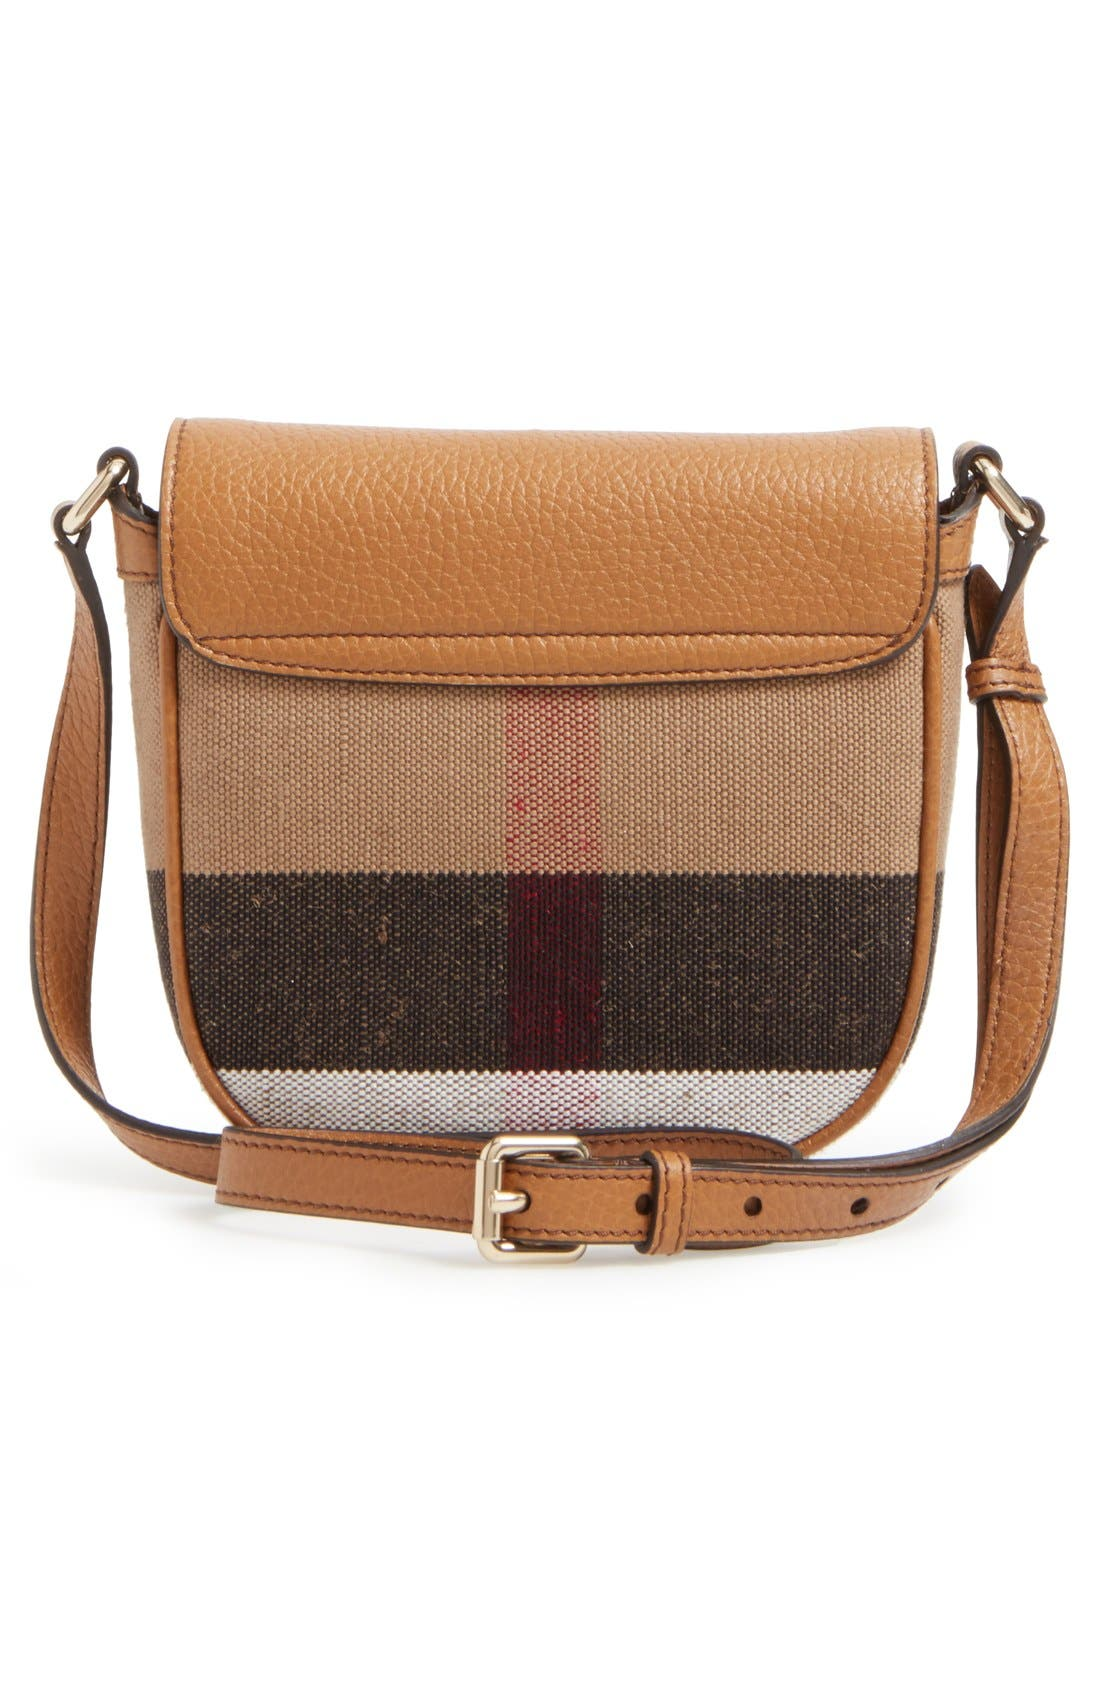 BURBERRY,                             Canvas Check & Leather Crossbody Bag,                             Alternate thumbnail 2, color,                             251